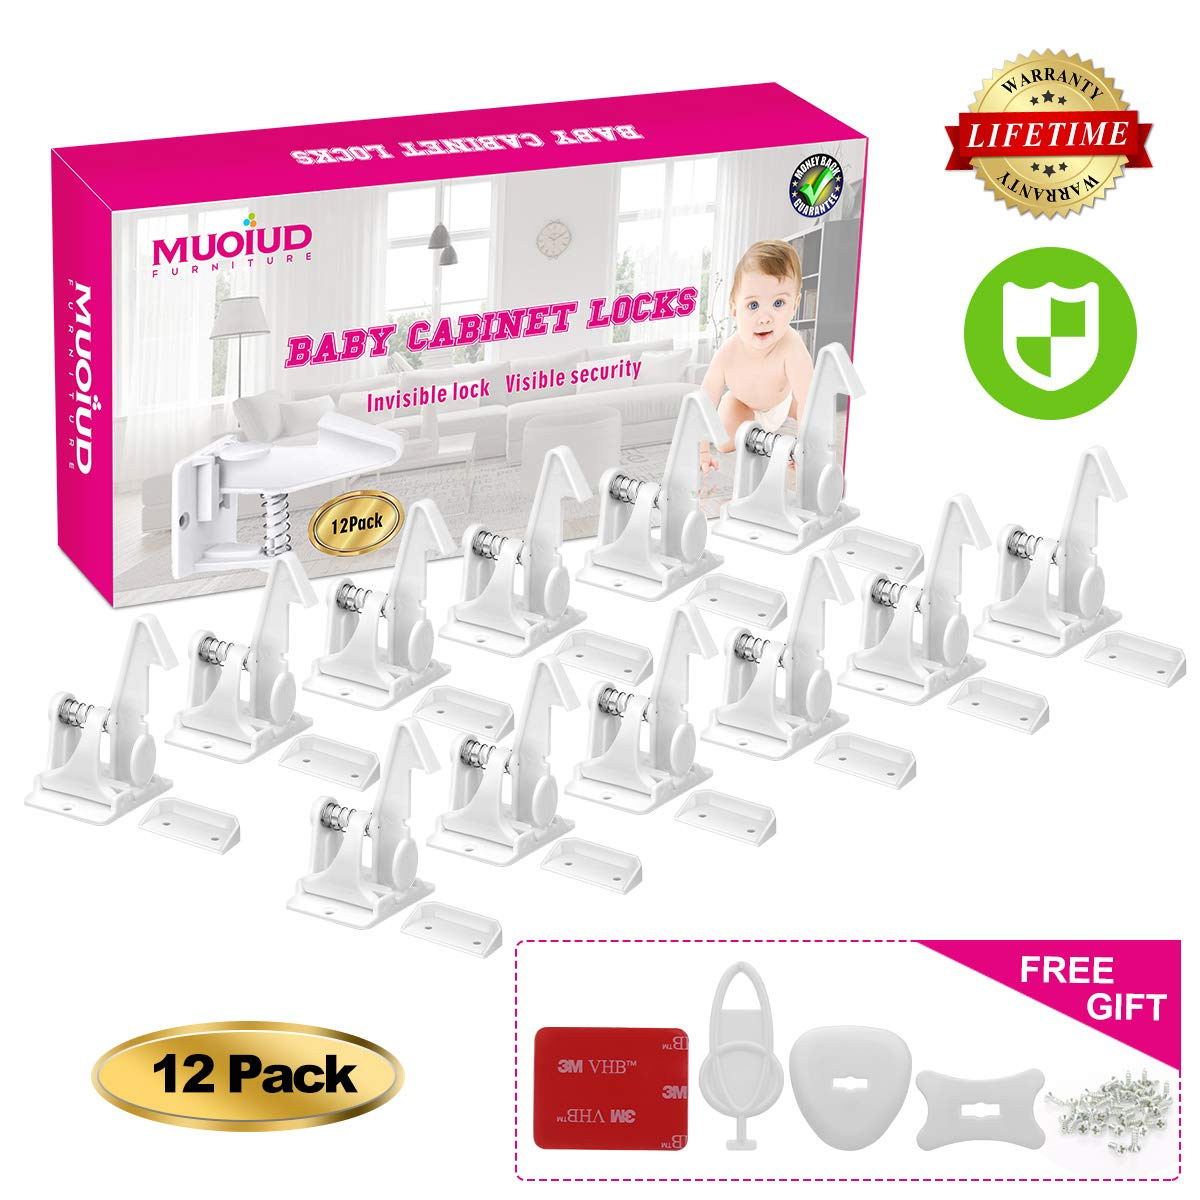 cabinet locks child safety, child cabinet locks,Baby Safety Cabinet Locks,【Invisible Design】baby proofing cabinets,No Tools and No Drilling Needed child drawer locks,【12 Packs】white 【Invisible Design】baby proofing cabinets